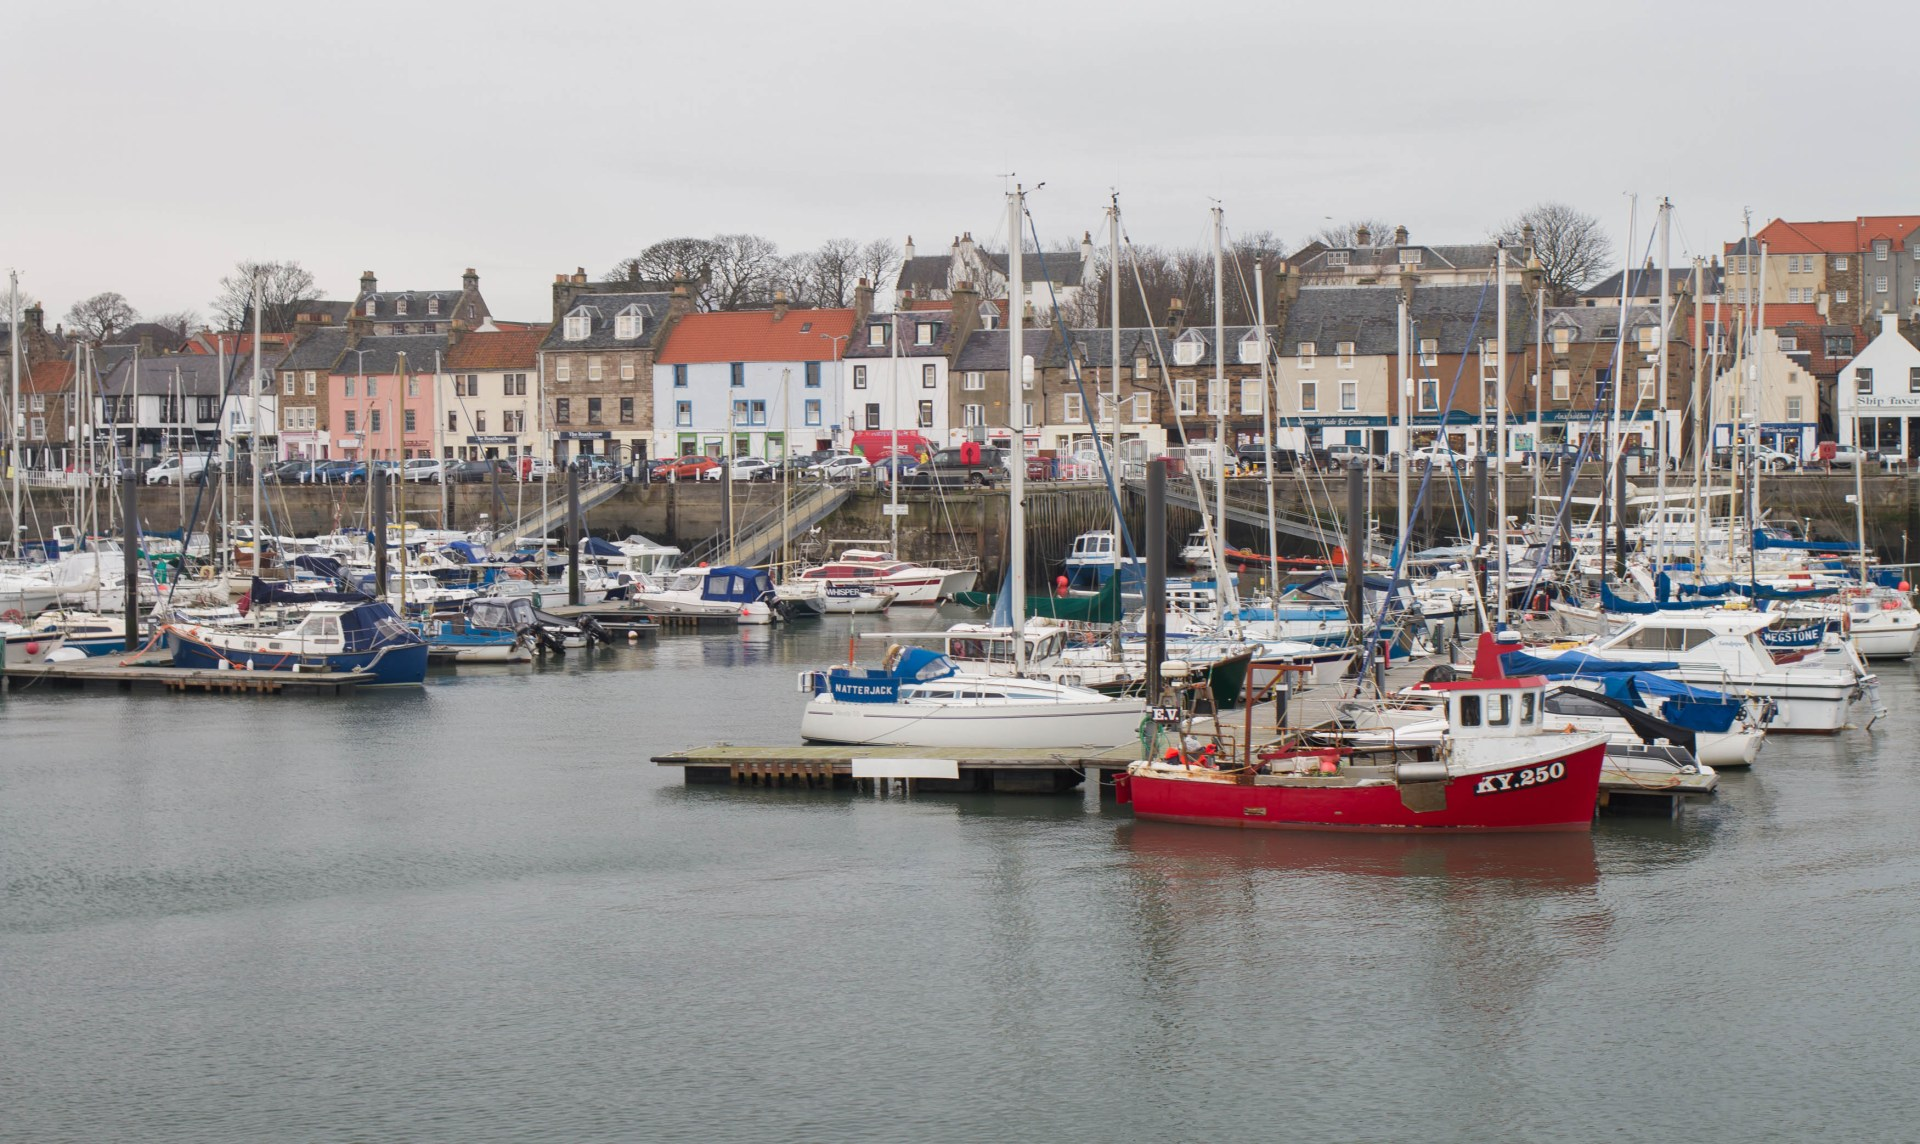 Anstruther, Fife, Scotland Travel Guide